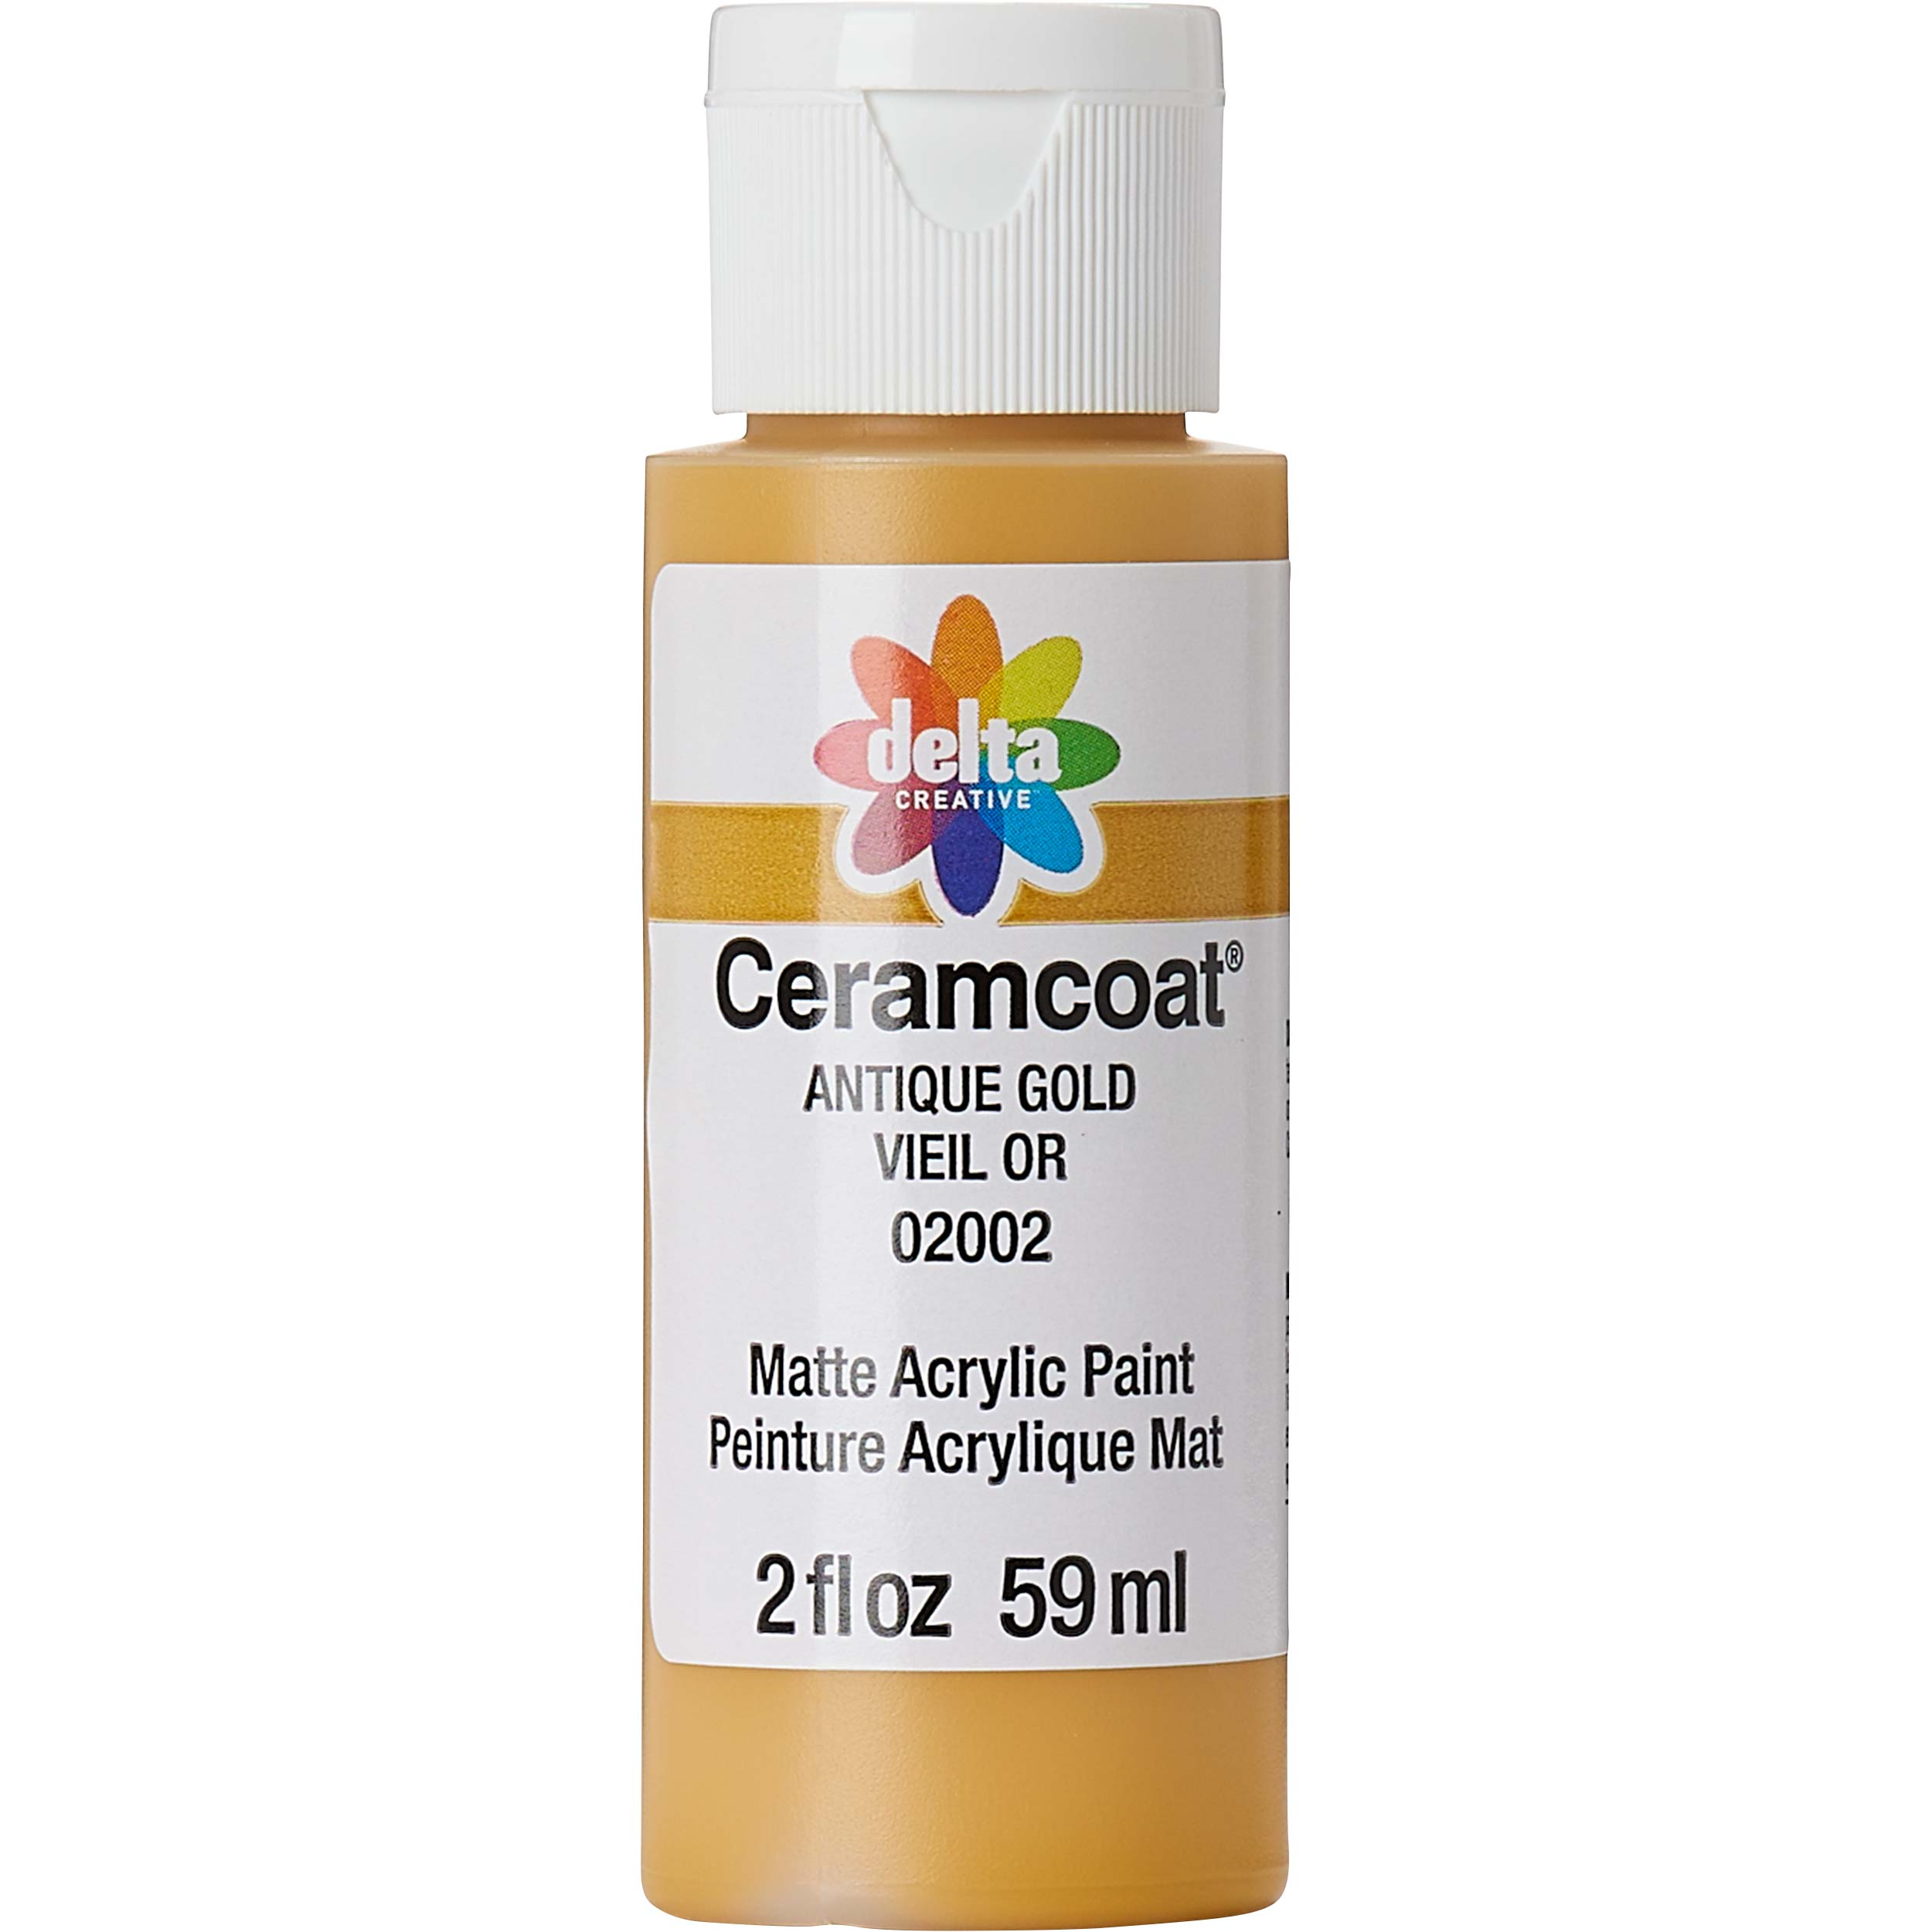 Delta Ceramcoat ® Acrylic Paint - Antique Gold, 2 oz.